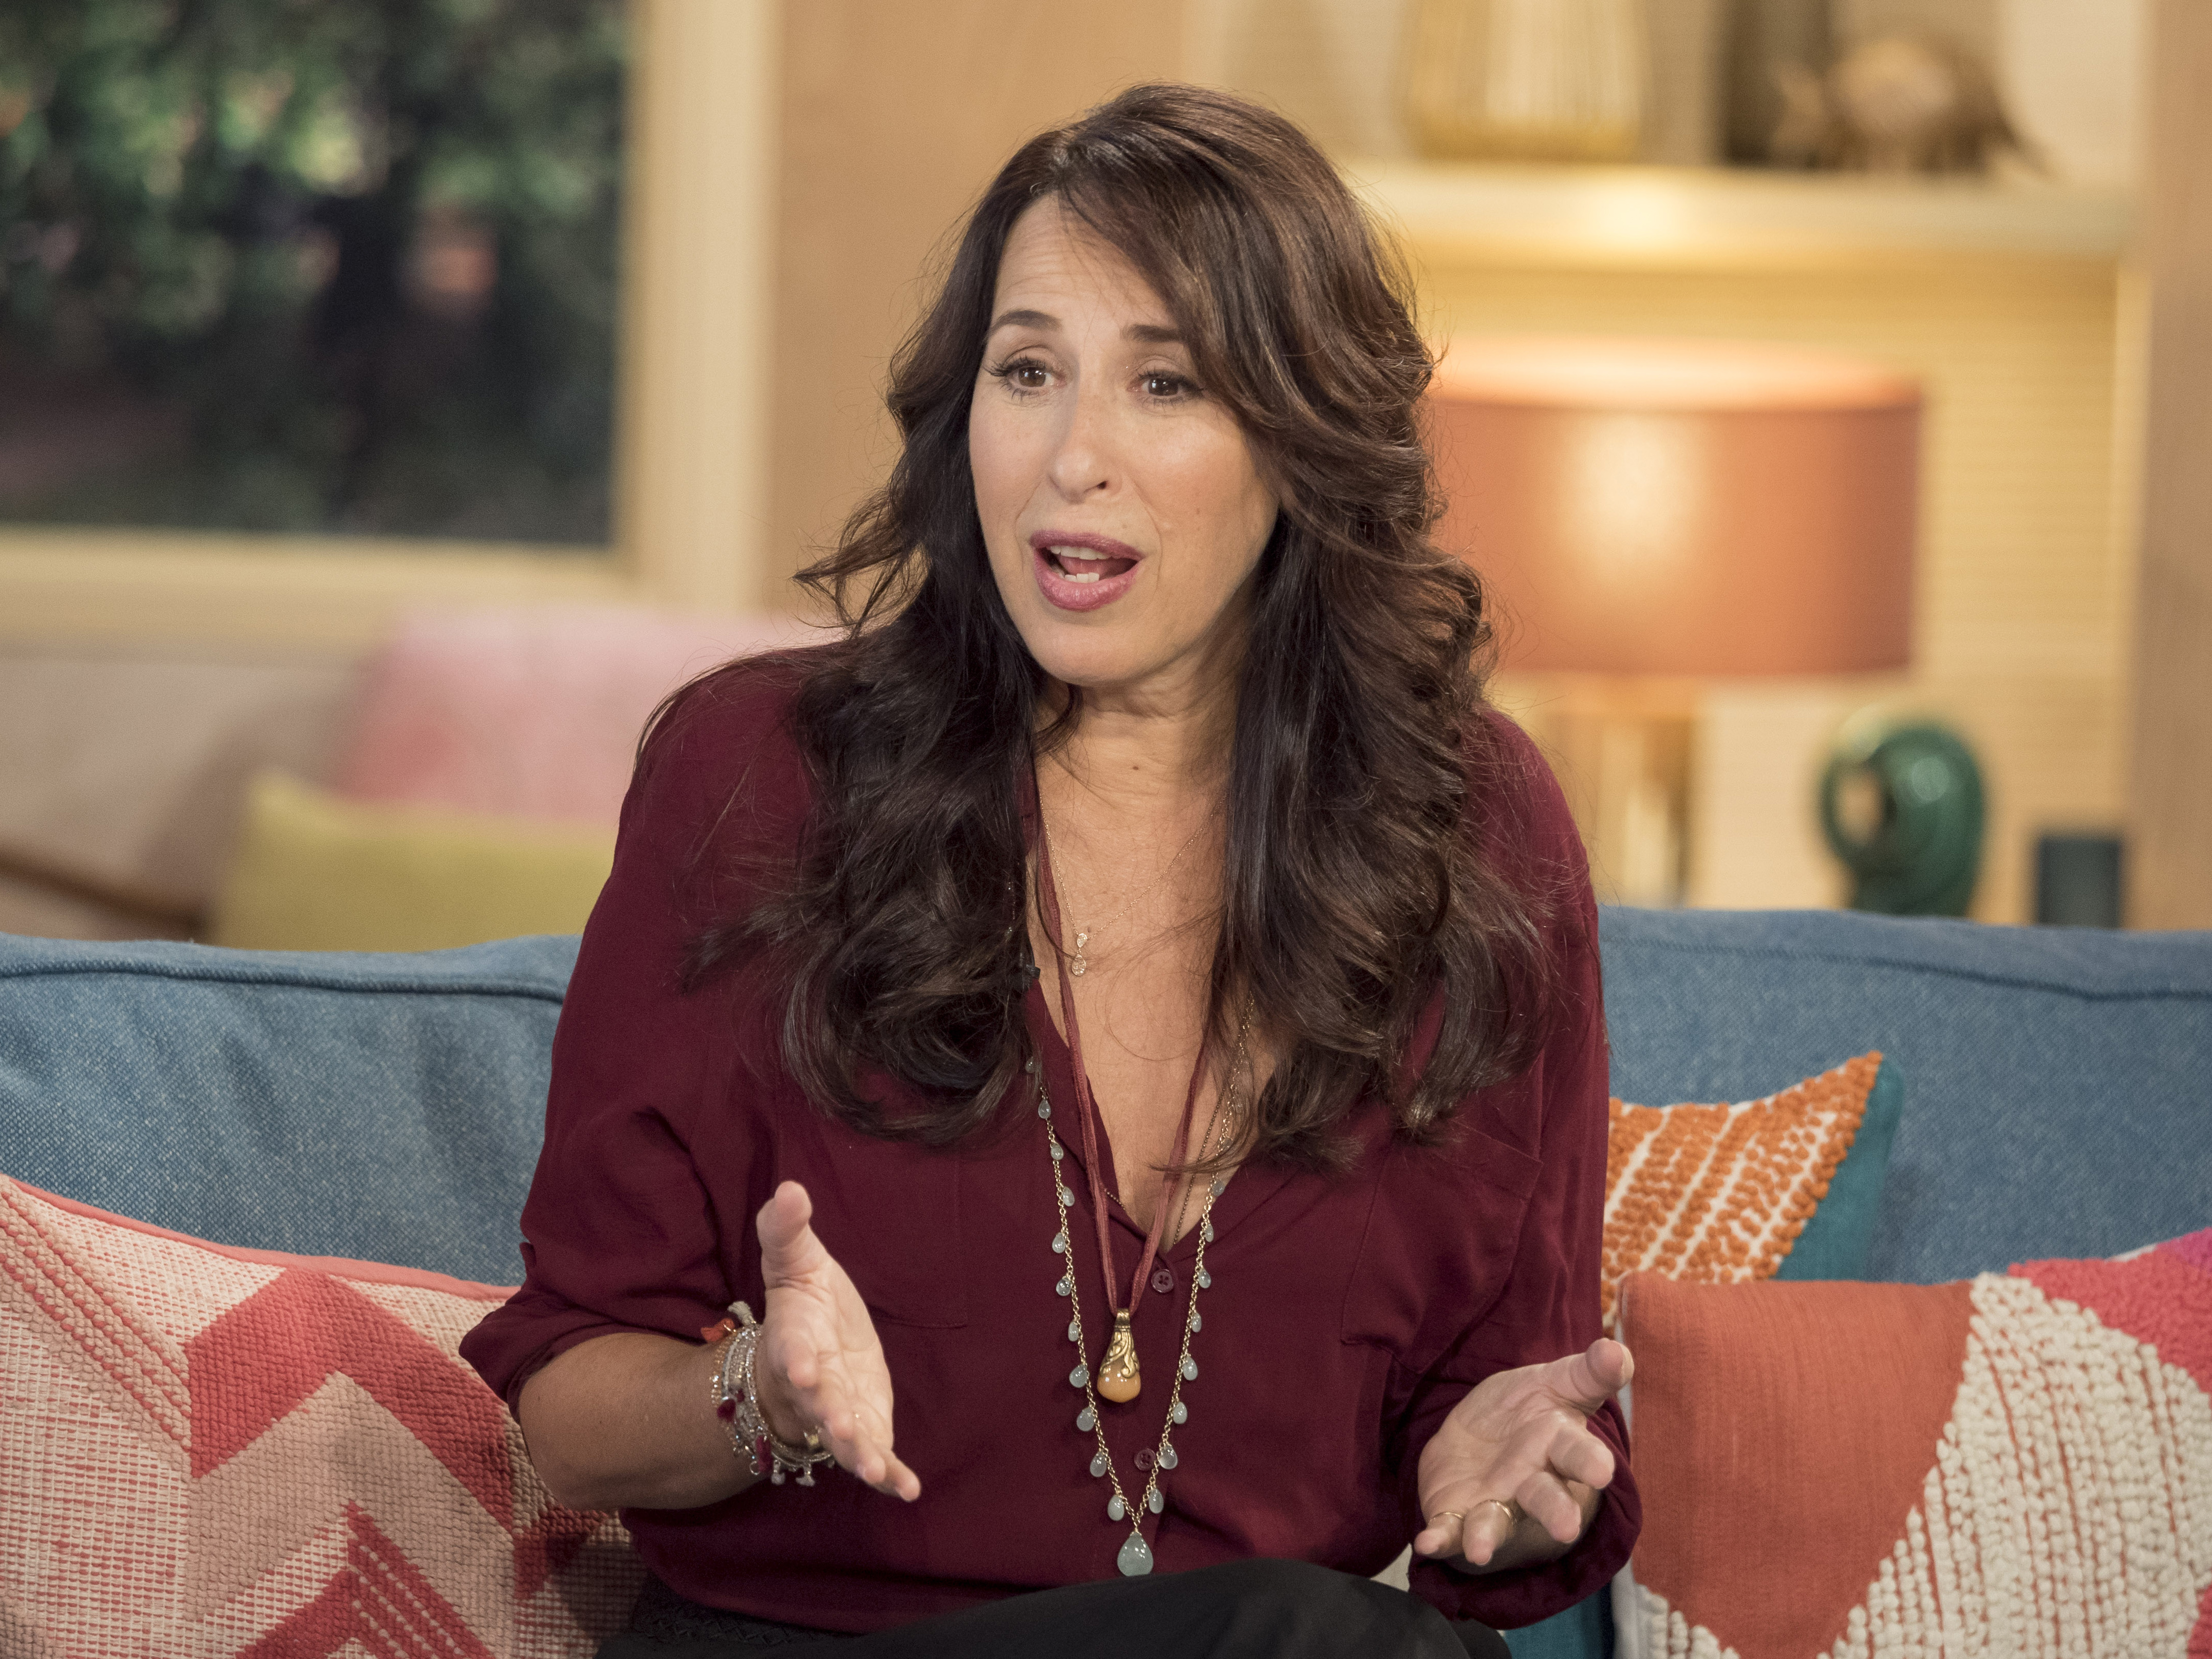 Oh. My. GWAD. This is what Janice from Friends looks like now!